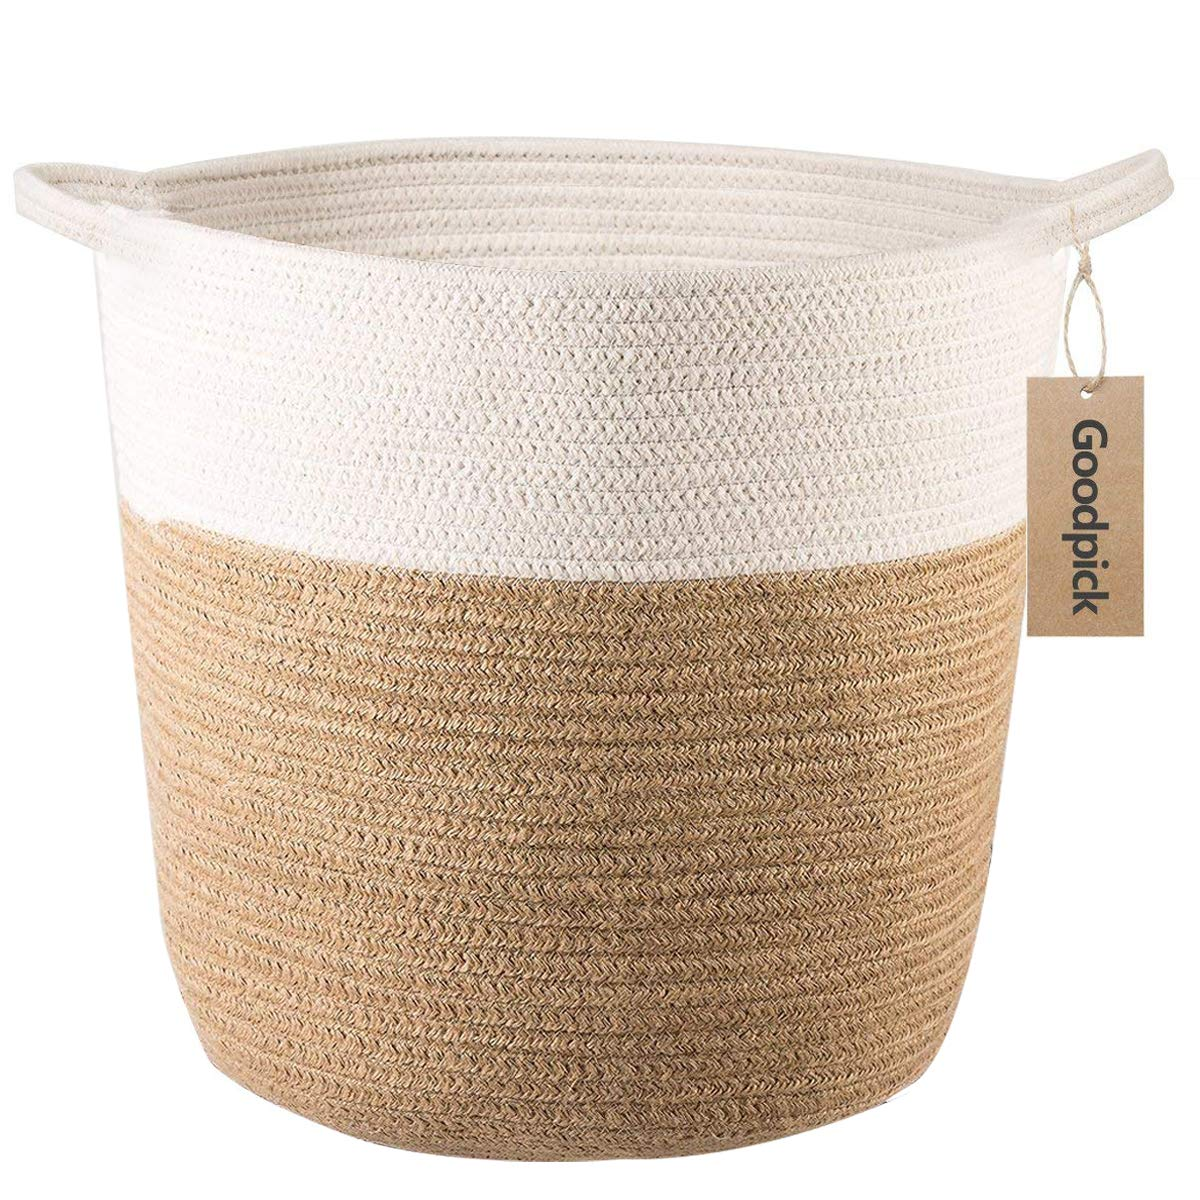 Goodpick Cotton Rope Storage Basket- Jute Basket Woven Planter Basket Rope Laundry Basket with Handles for Toys, Blanket and Pot Plant Cover, 16.0'' x15.0'' x12.6''